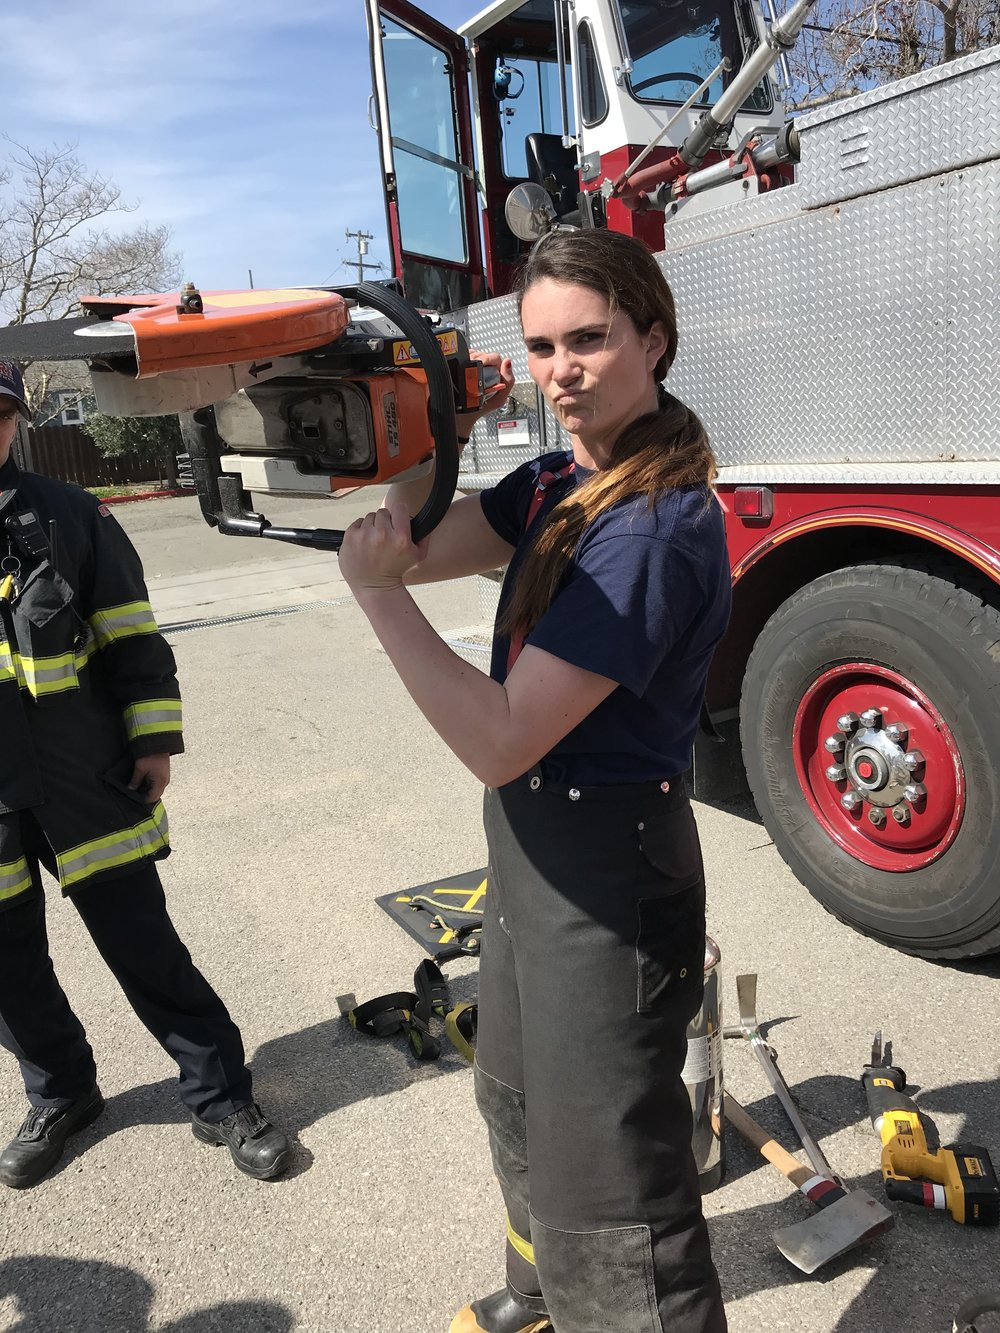 MENTORSHIP - Students may able to ride along for a day and live in the life of a Berkeley firefighter and given information on what school and prerequisites are required to become a professional firefighter.